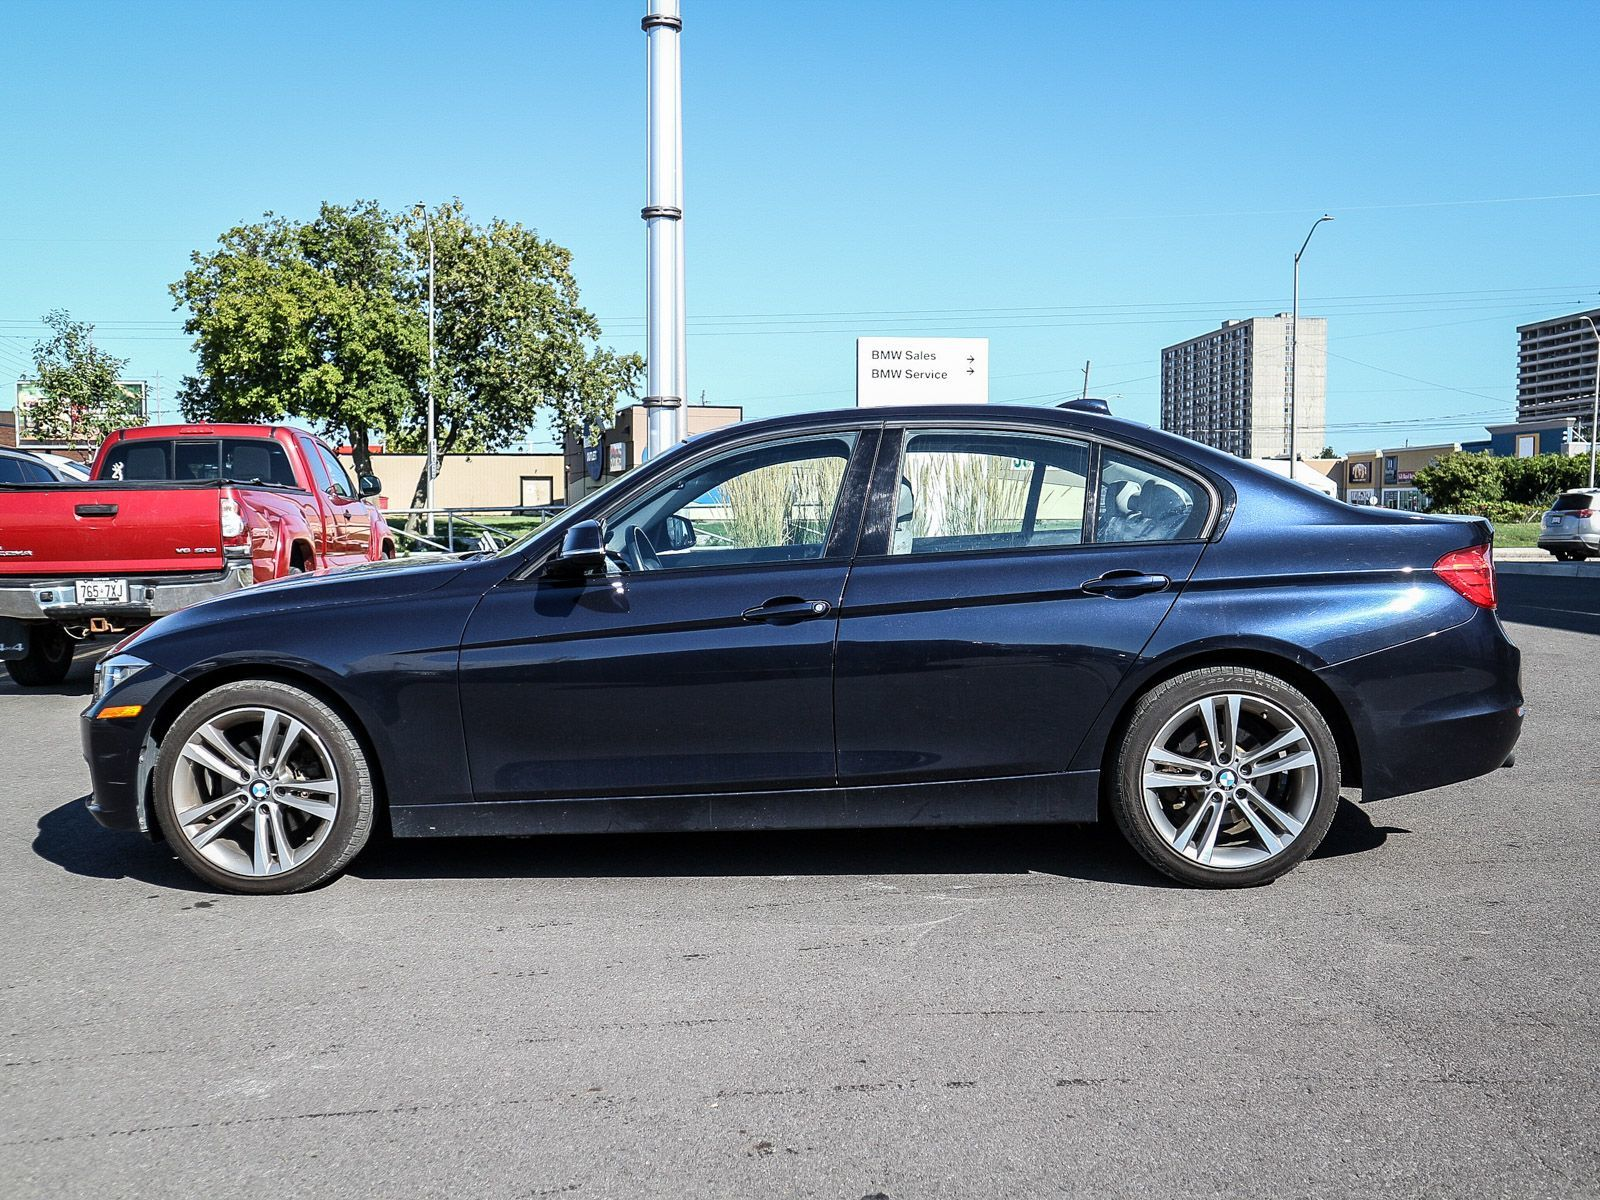 used 2014 bmw 320i sport awd leather for sale price elite bmw BMW X1 Wallpaper 2014 bmw 320i sport awd leather more details